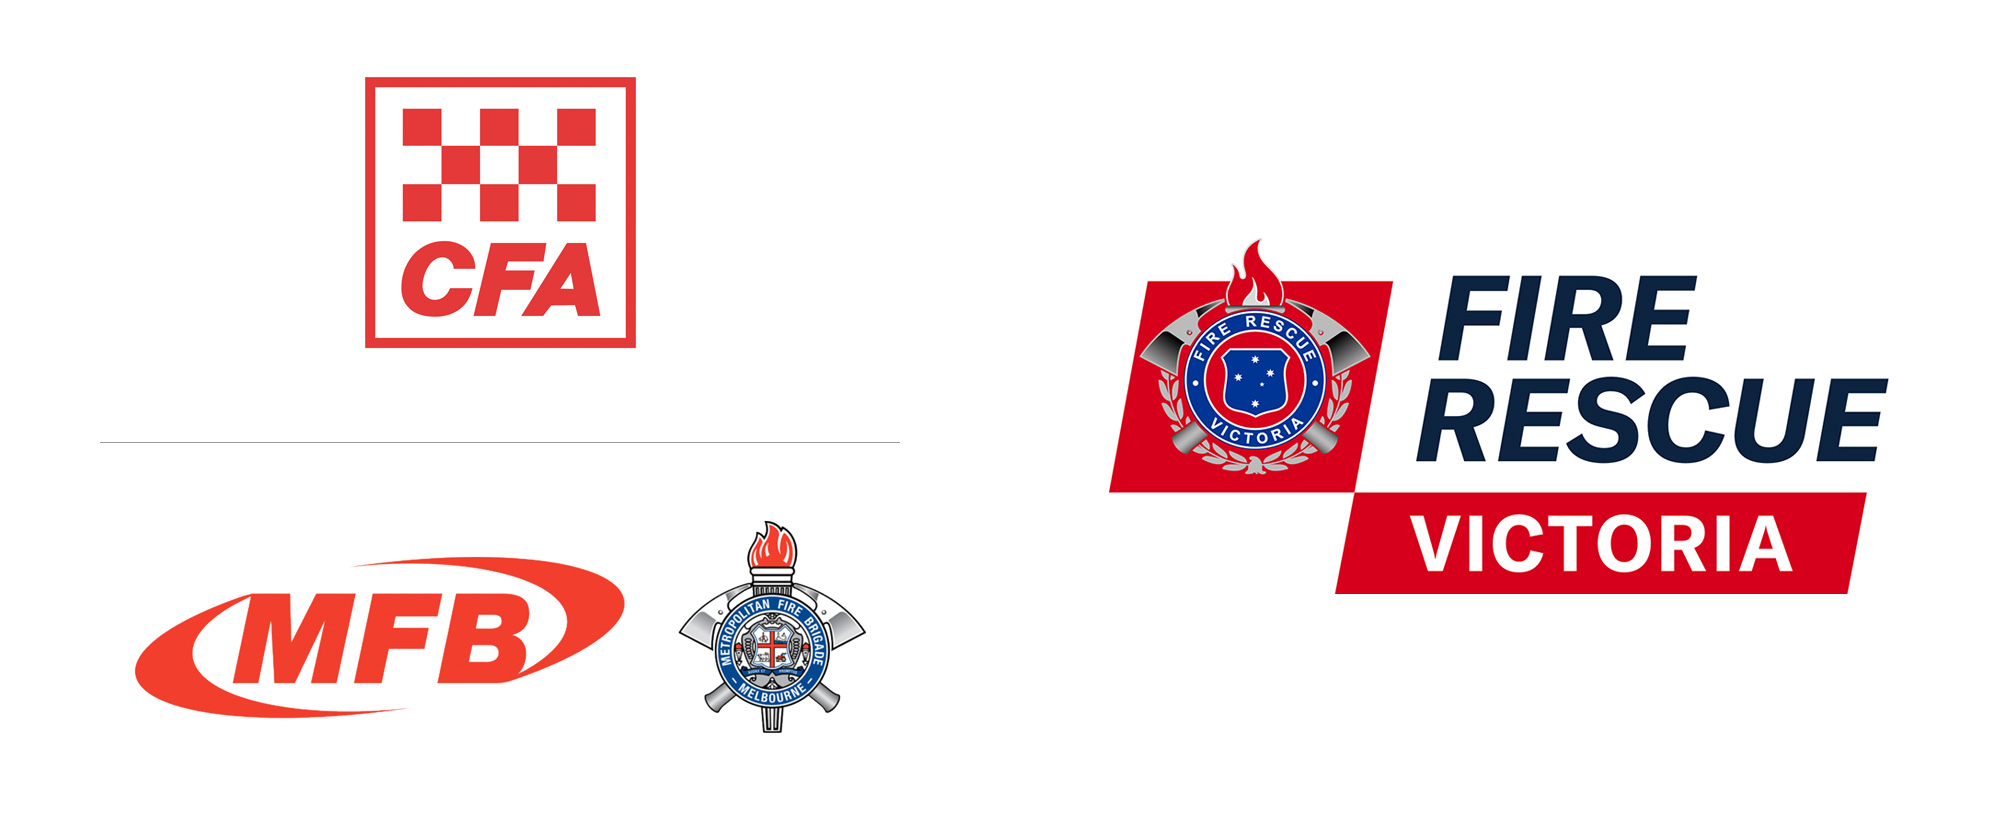 New Name and Logo for Fire Rescue Victoria